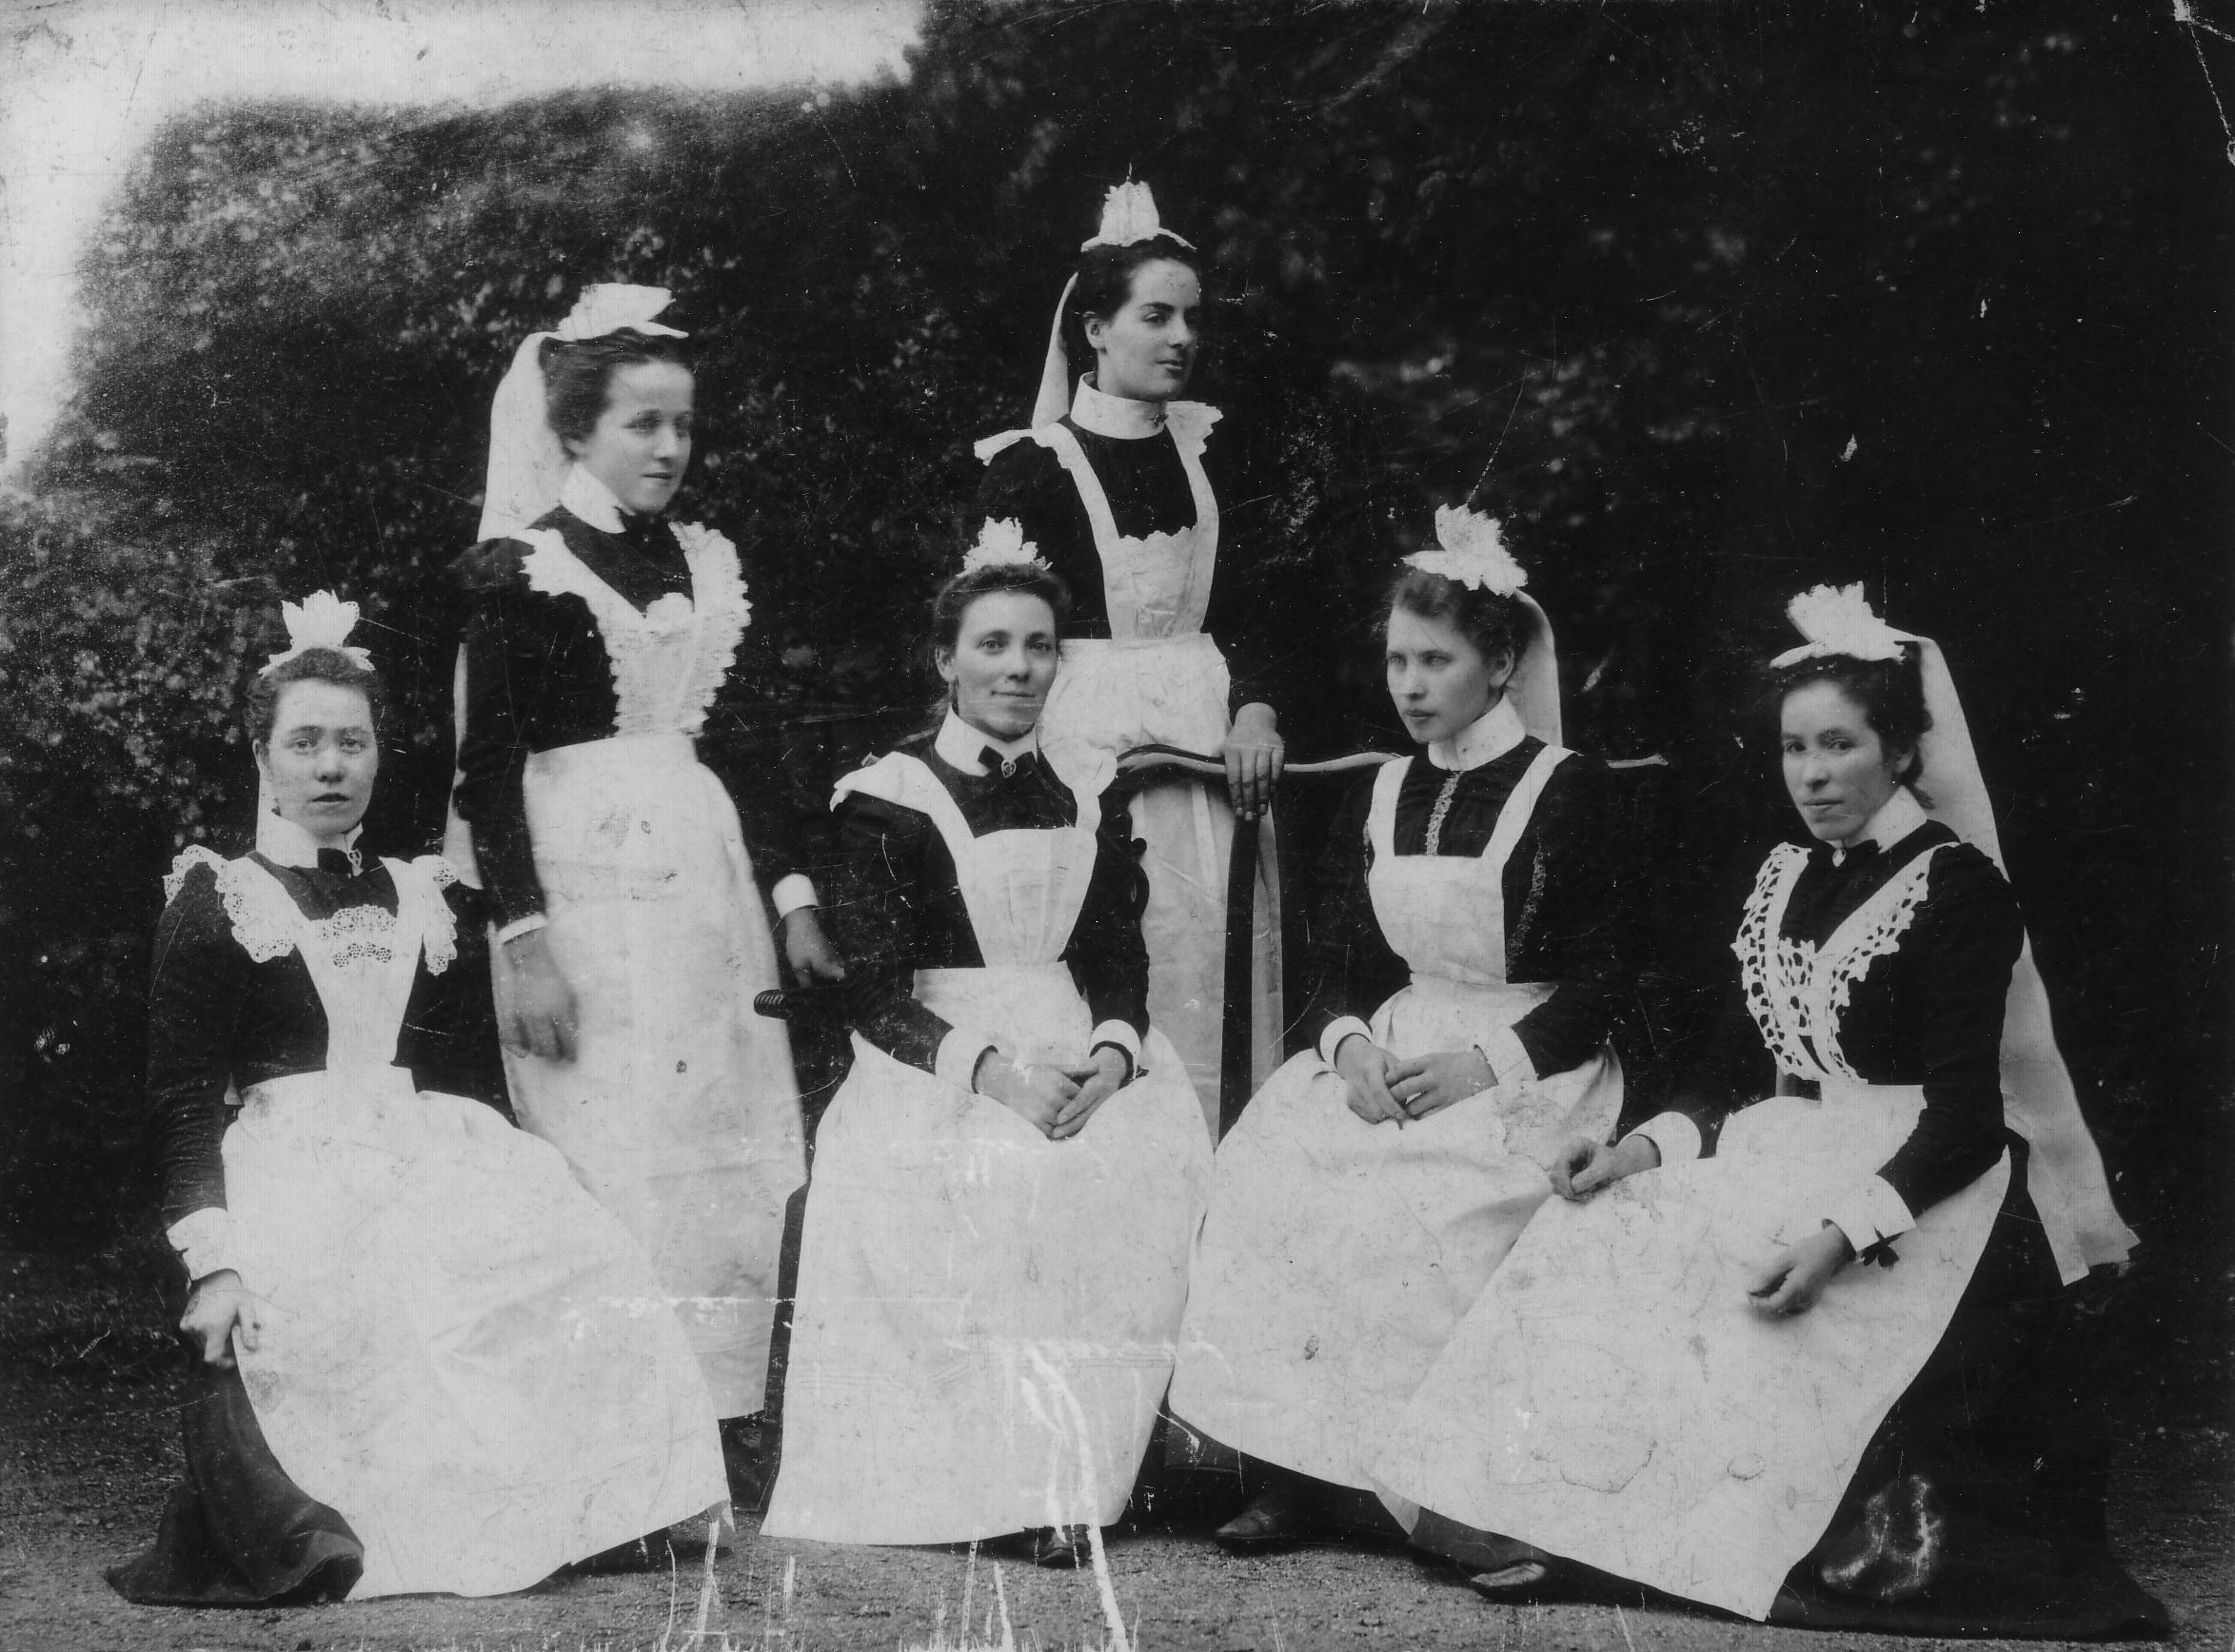 Maid Servants 1900s